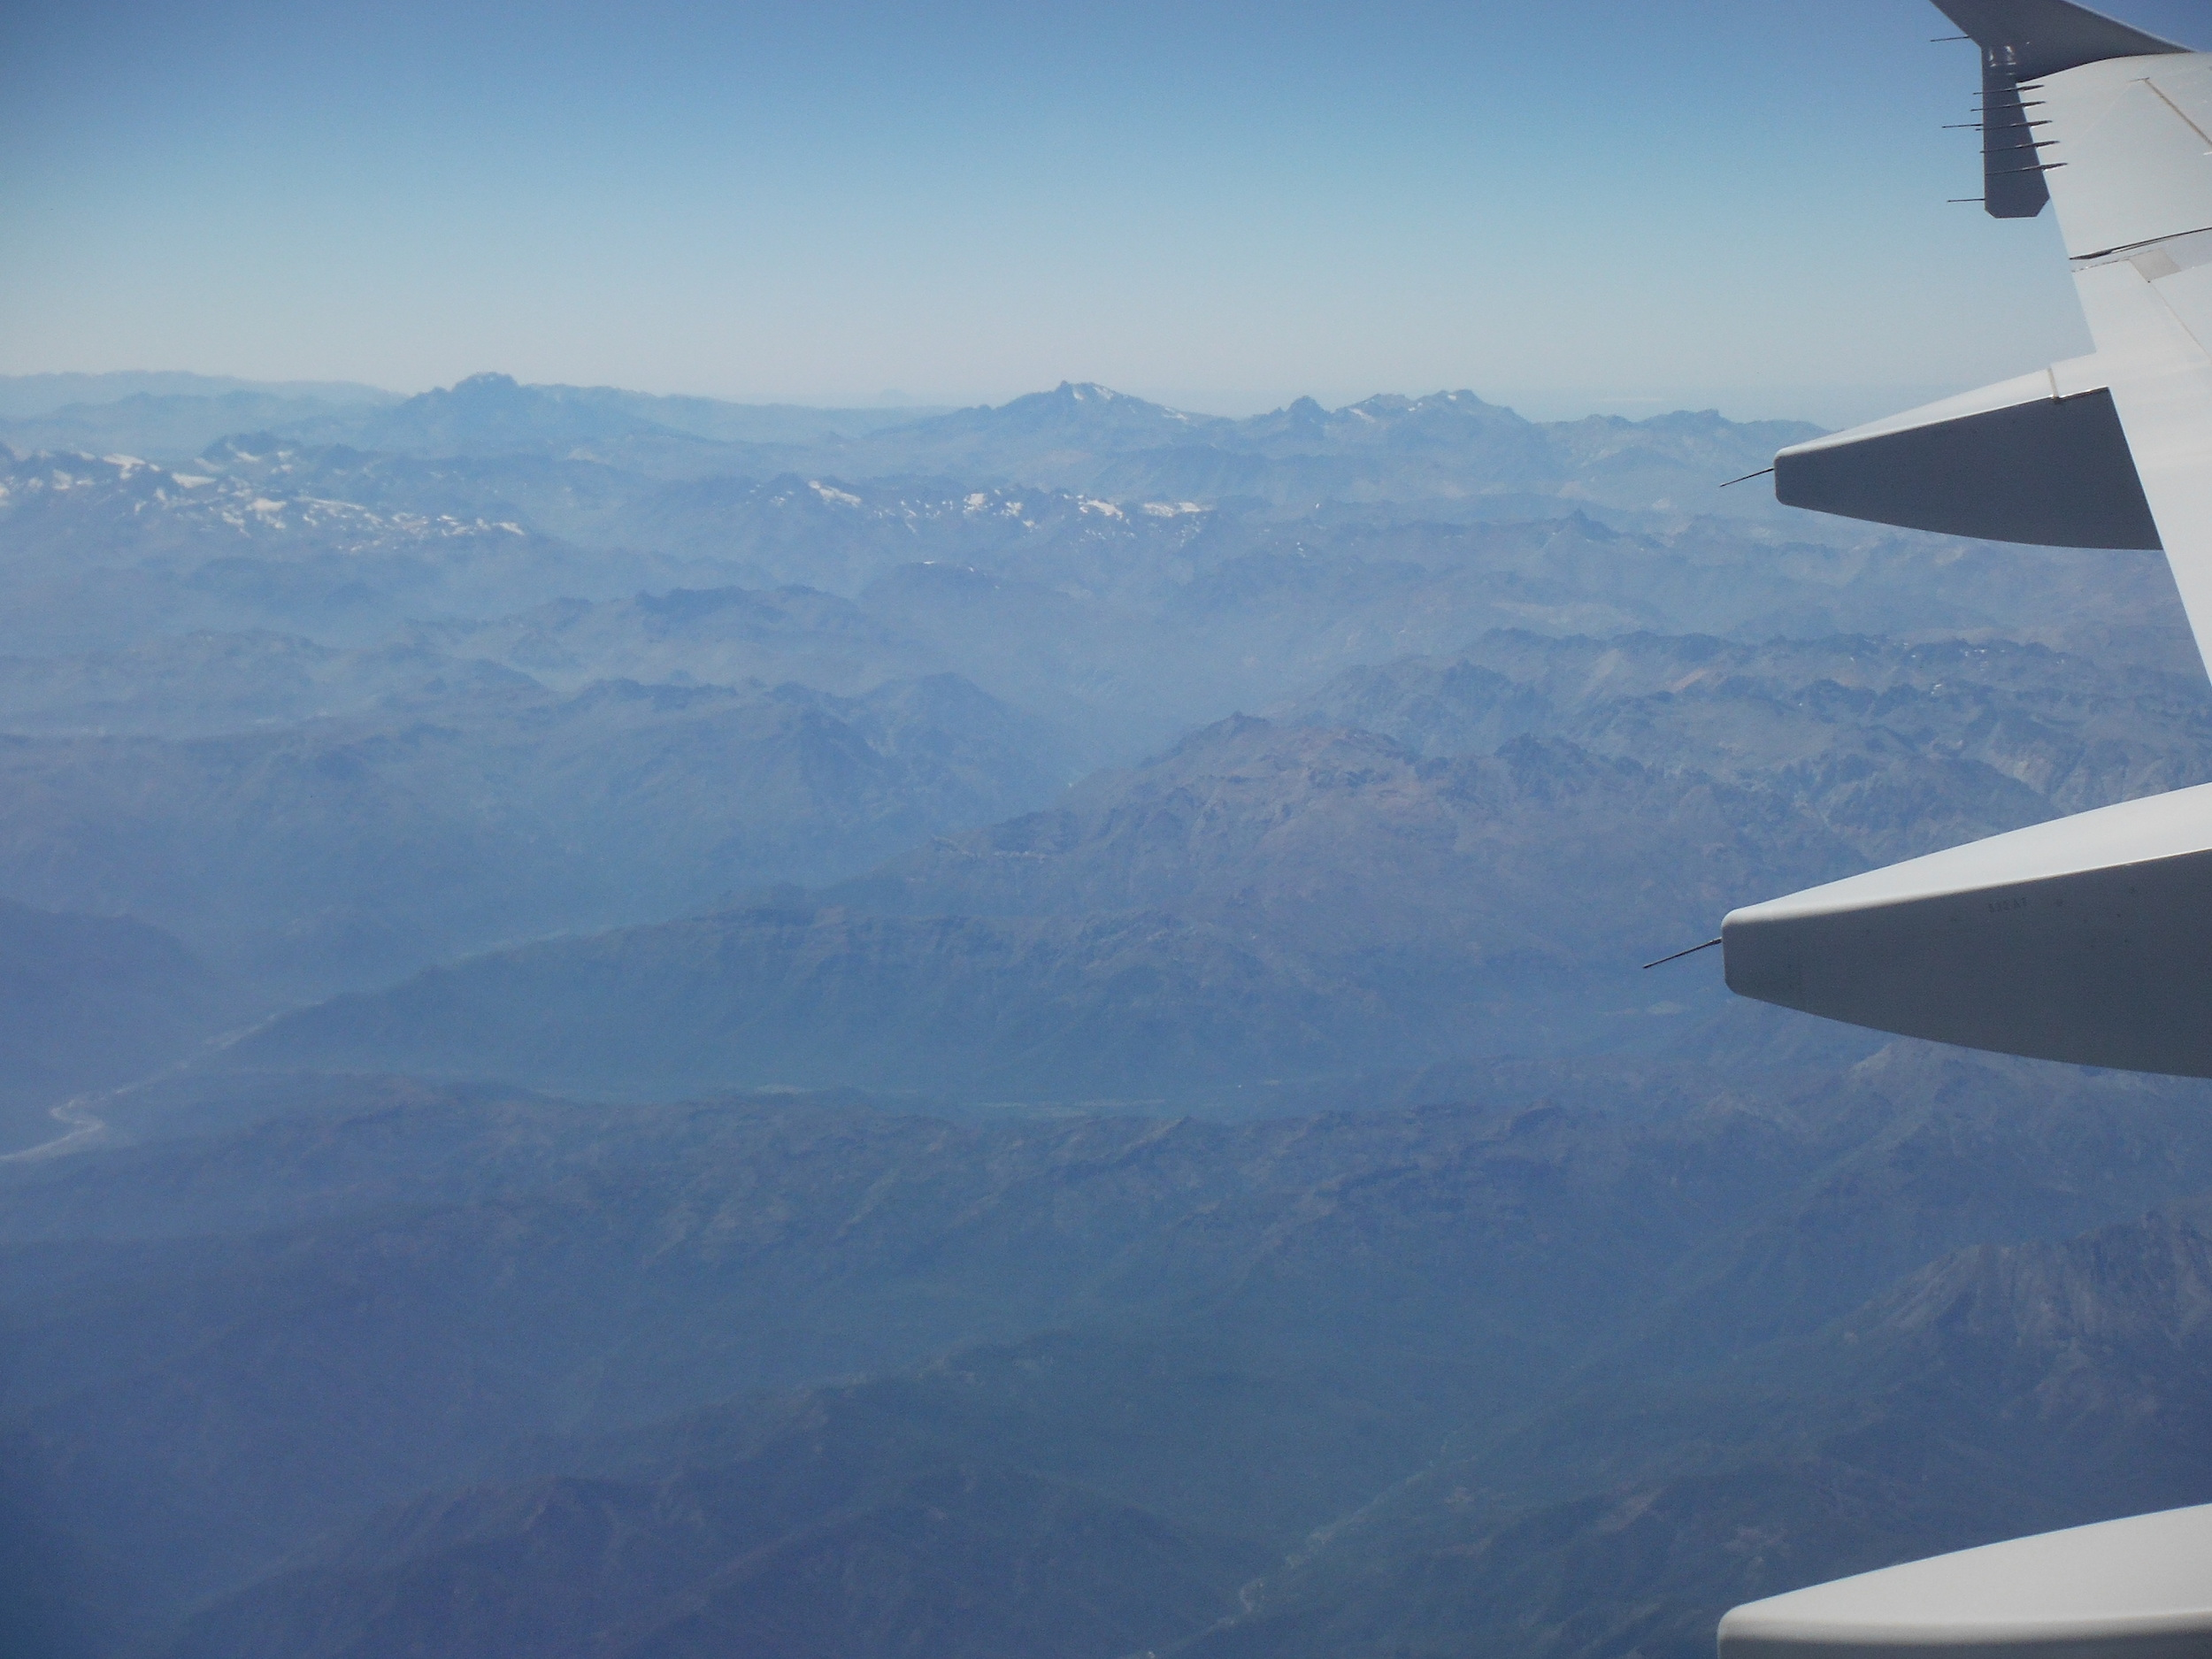 Airplane over mountains